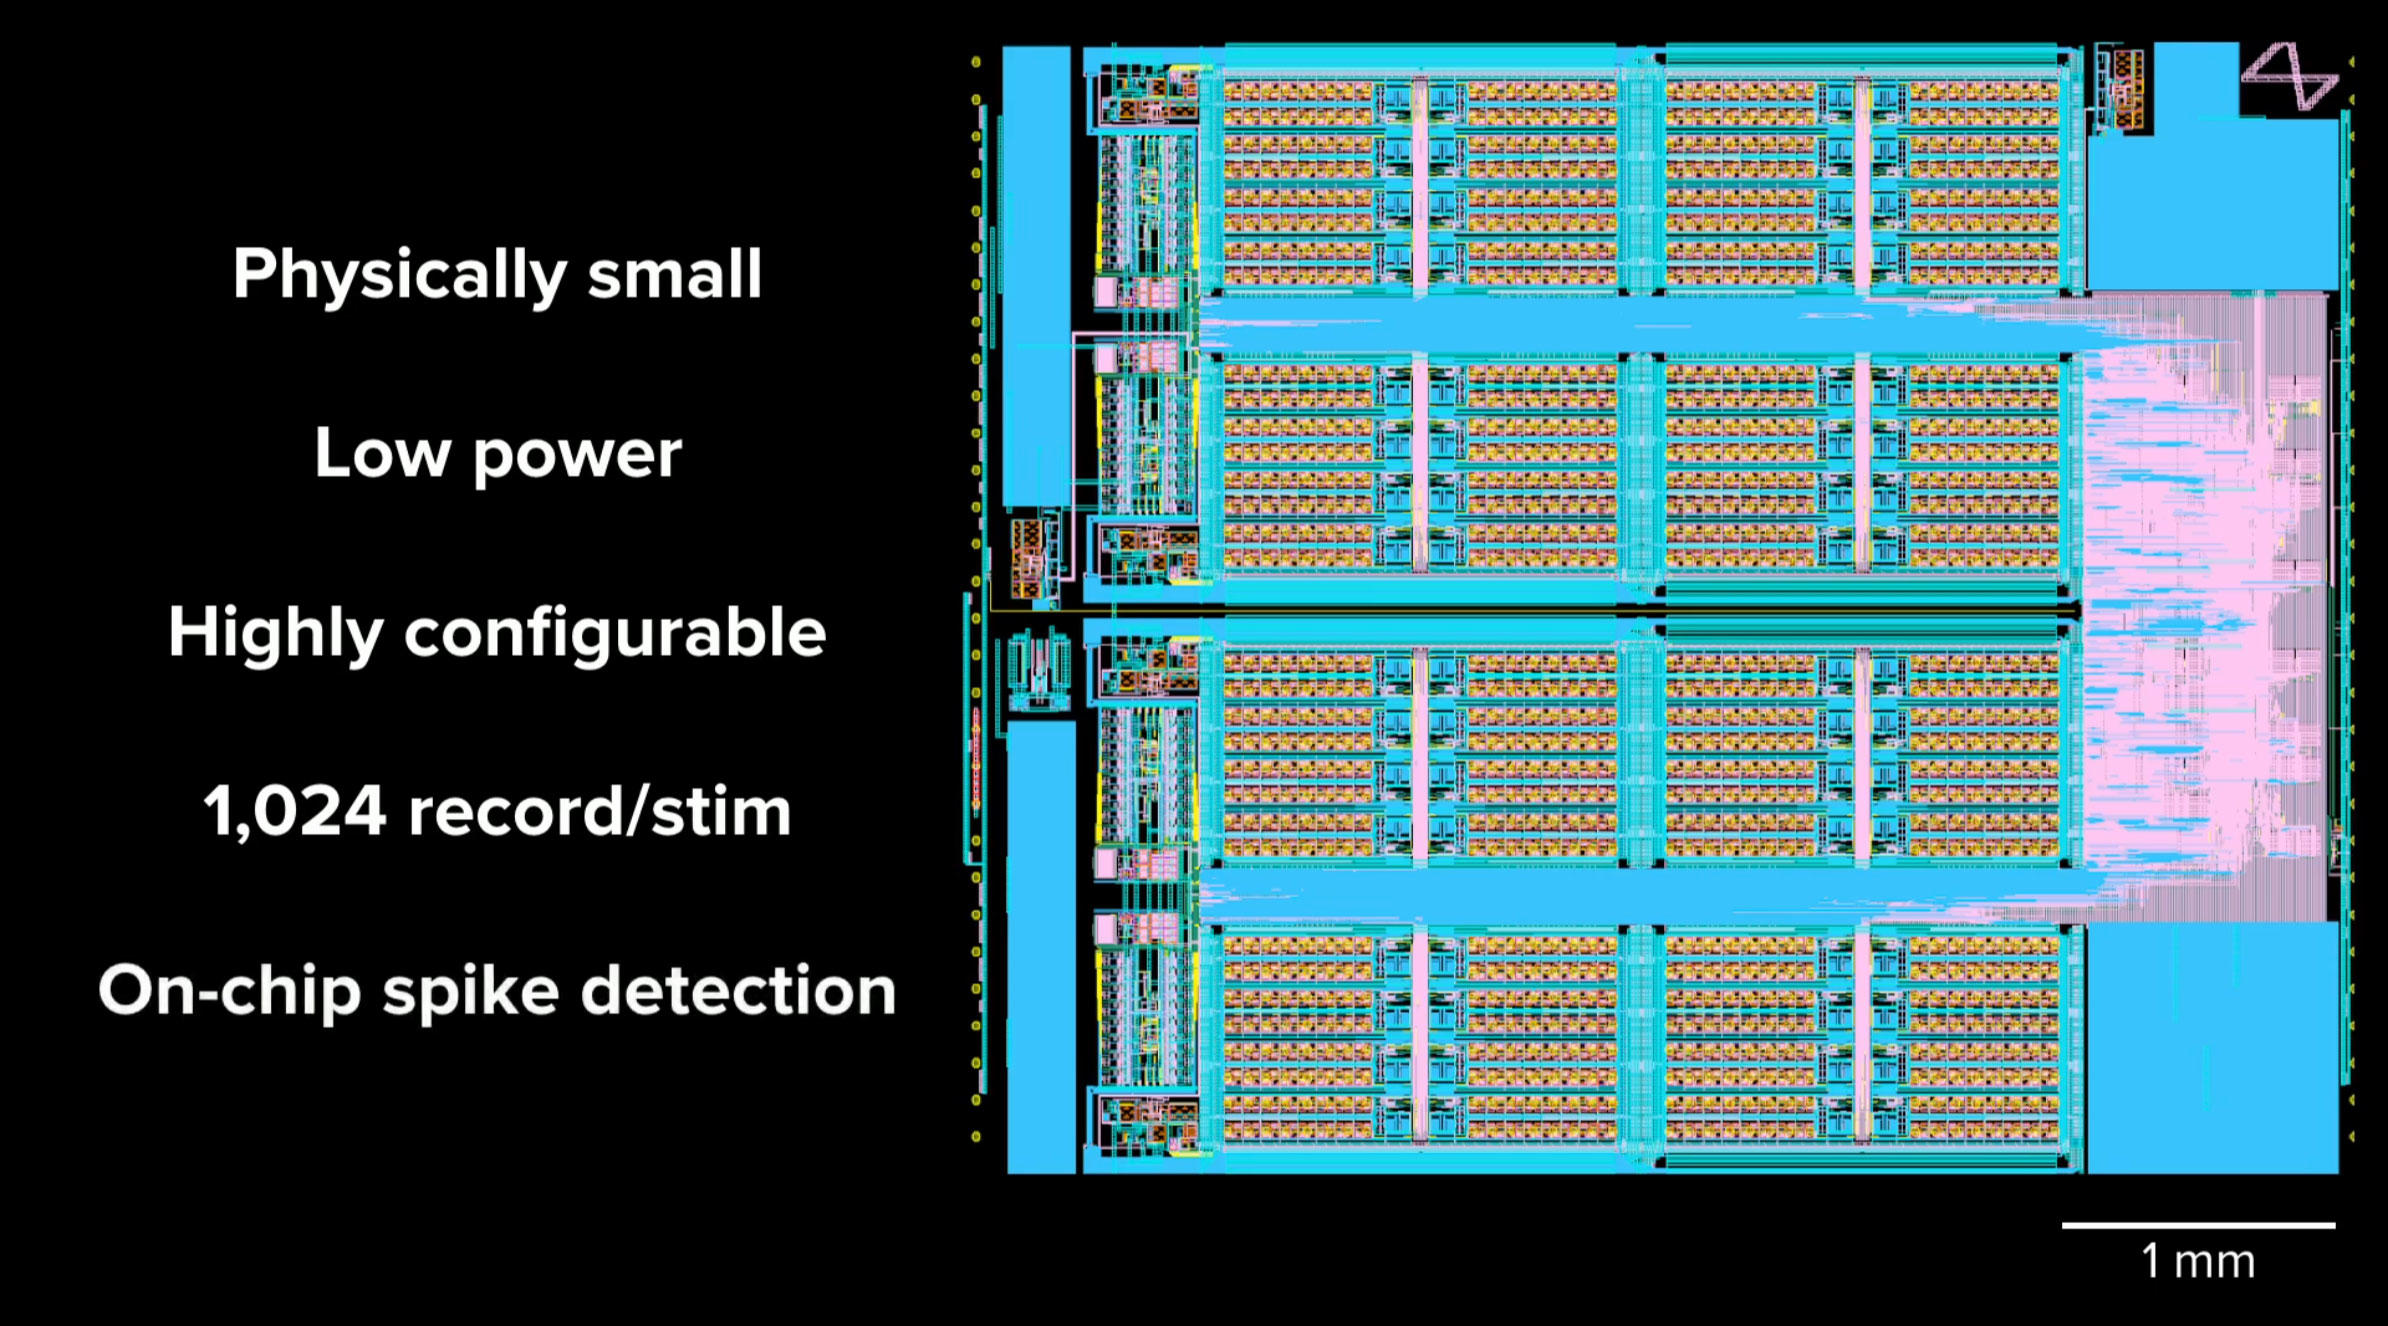 Neuralink's N1 sensor chip, measuring 4x5mm in its present incarnation, can detect spikes of neural activity and send signals back to the brain.